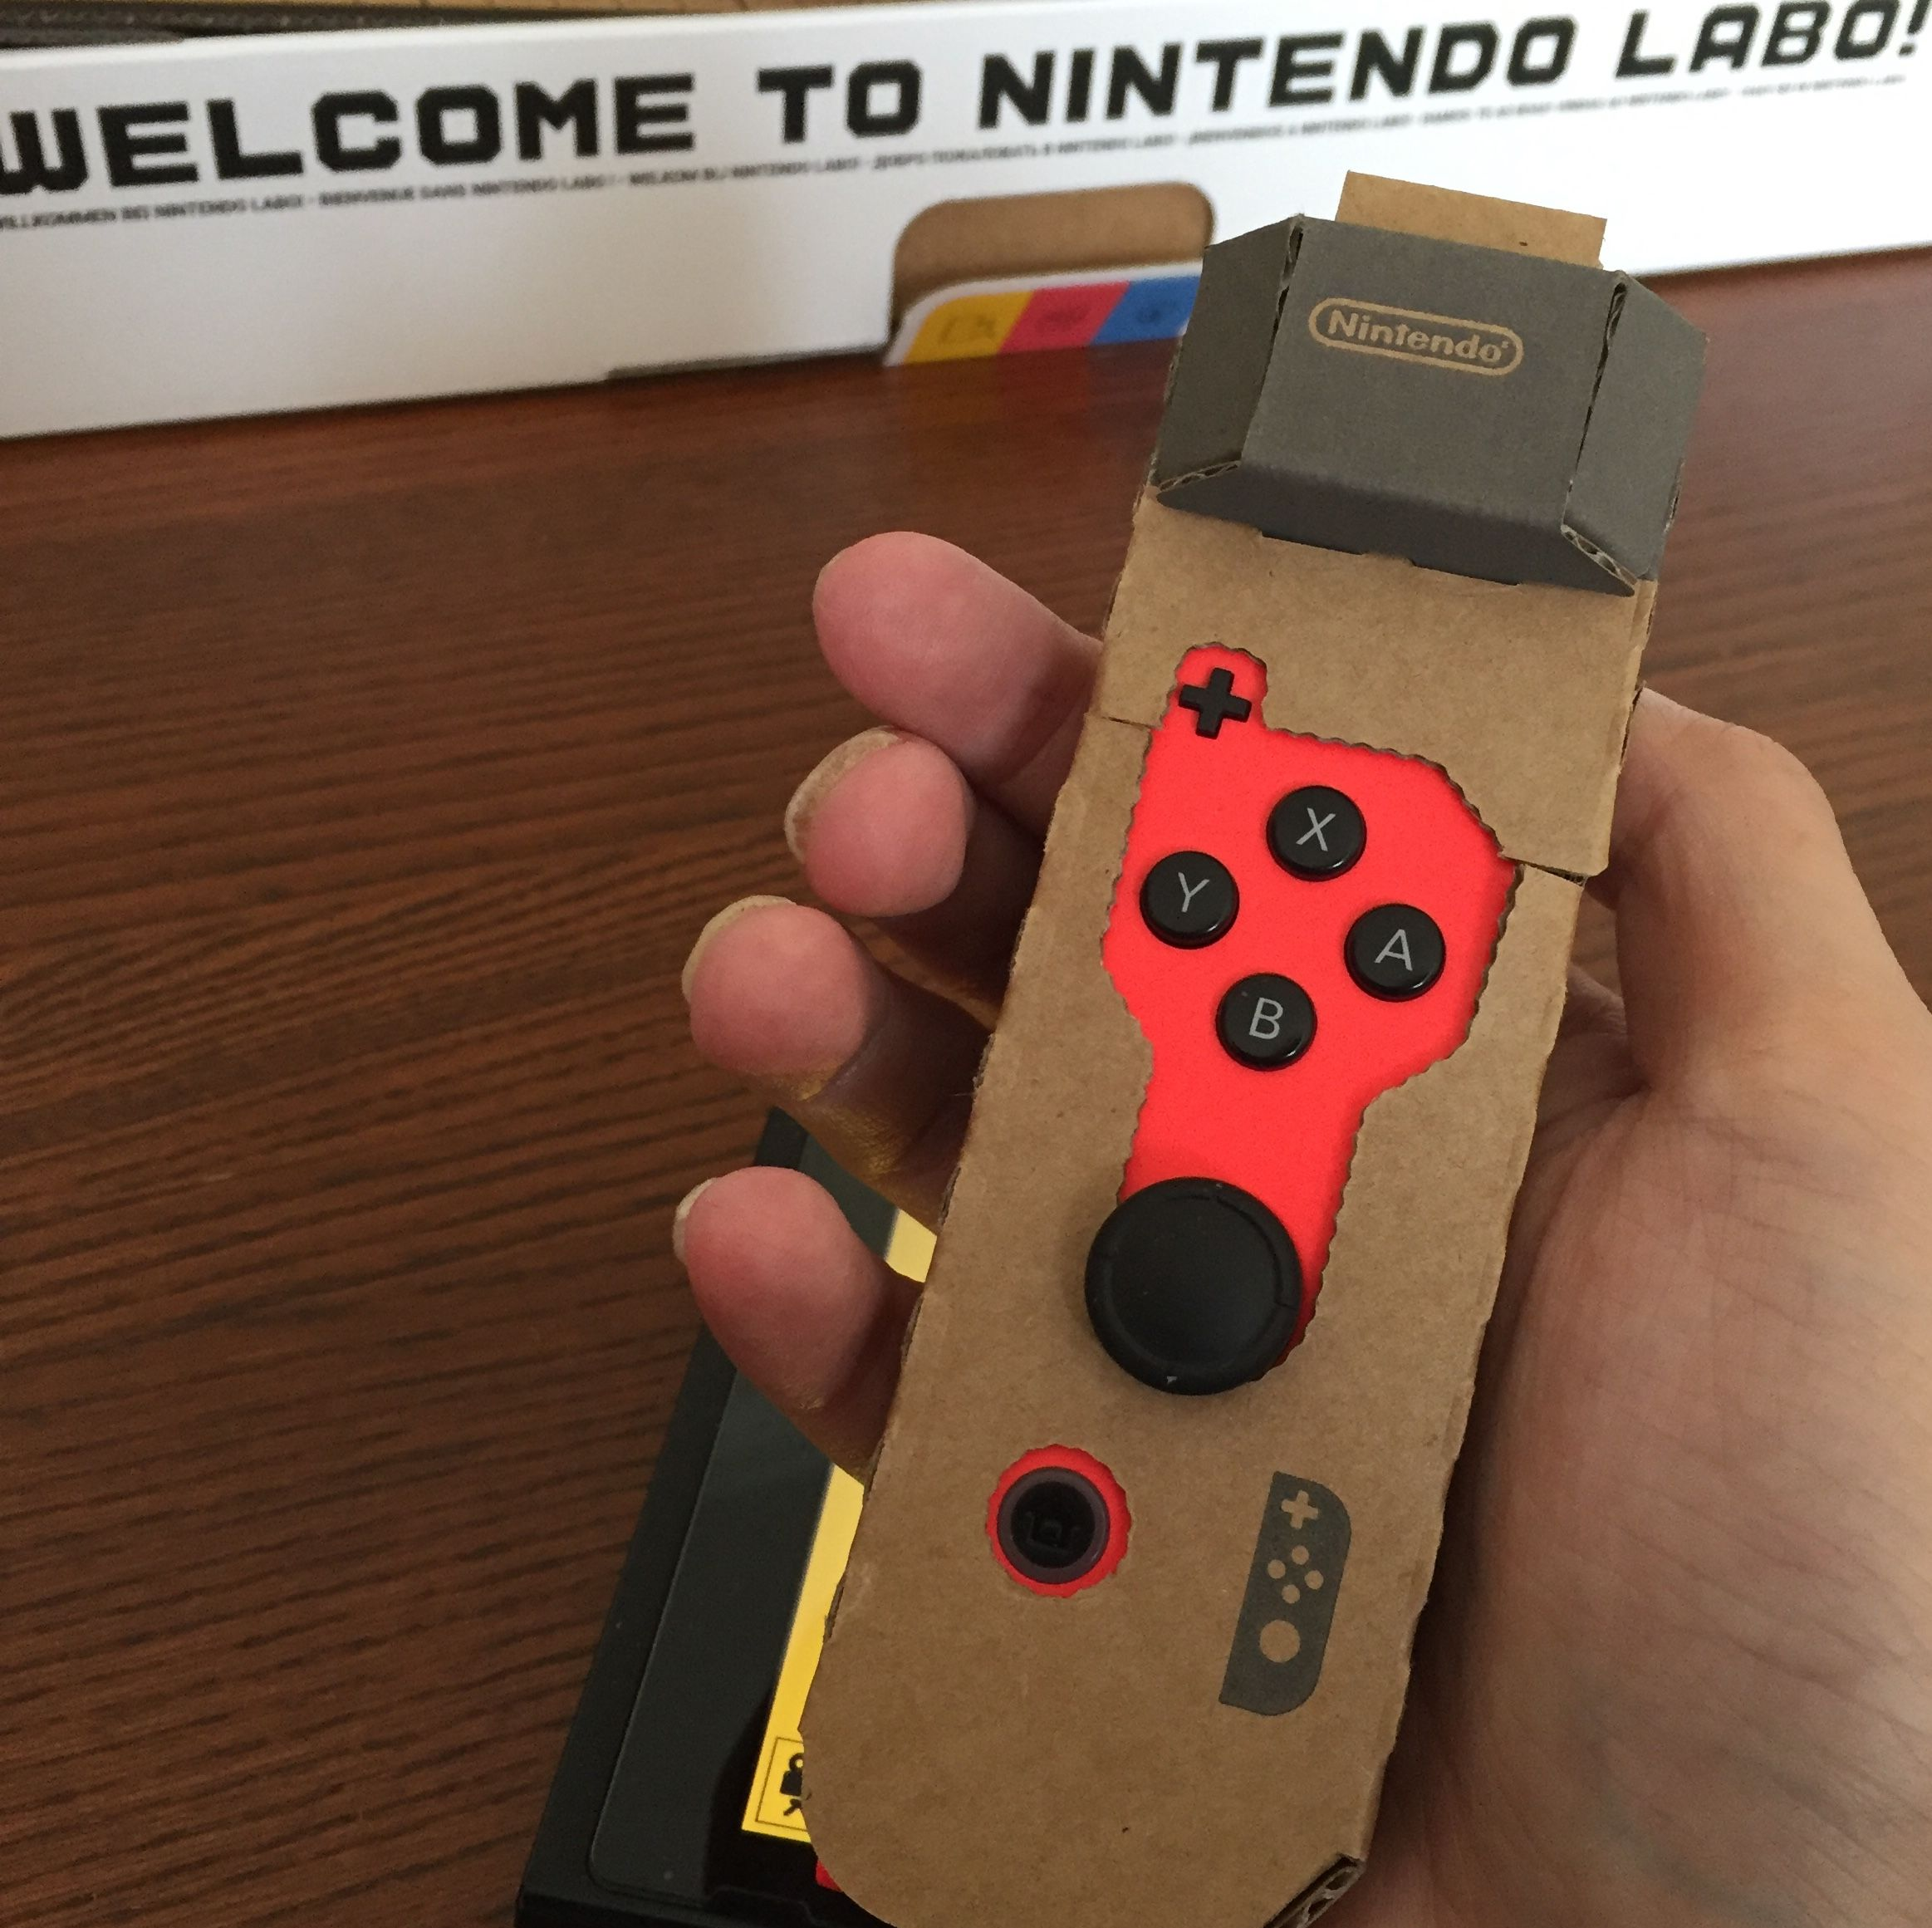 Nintendo Switch is going VR with latest Labo kit